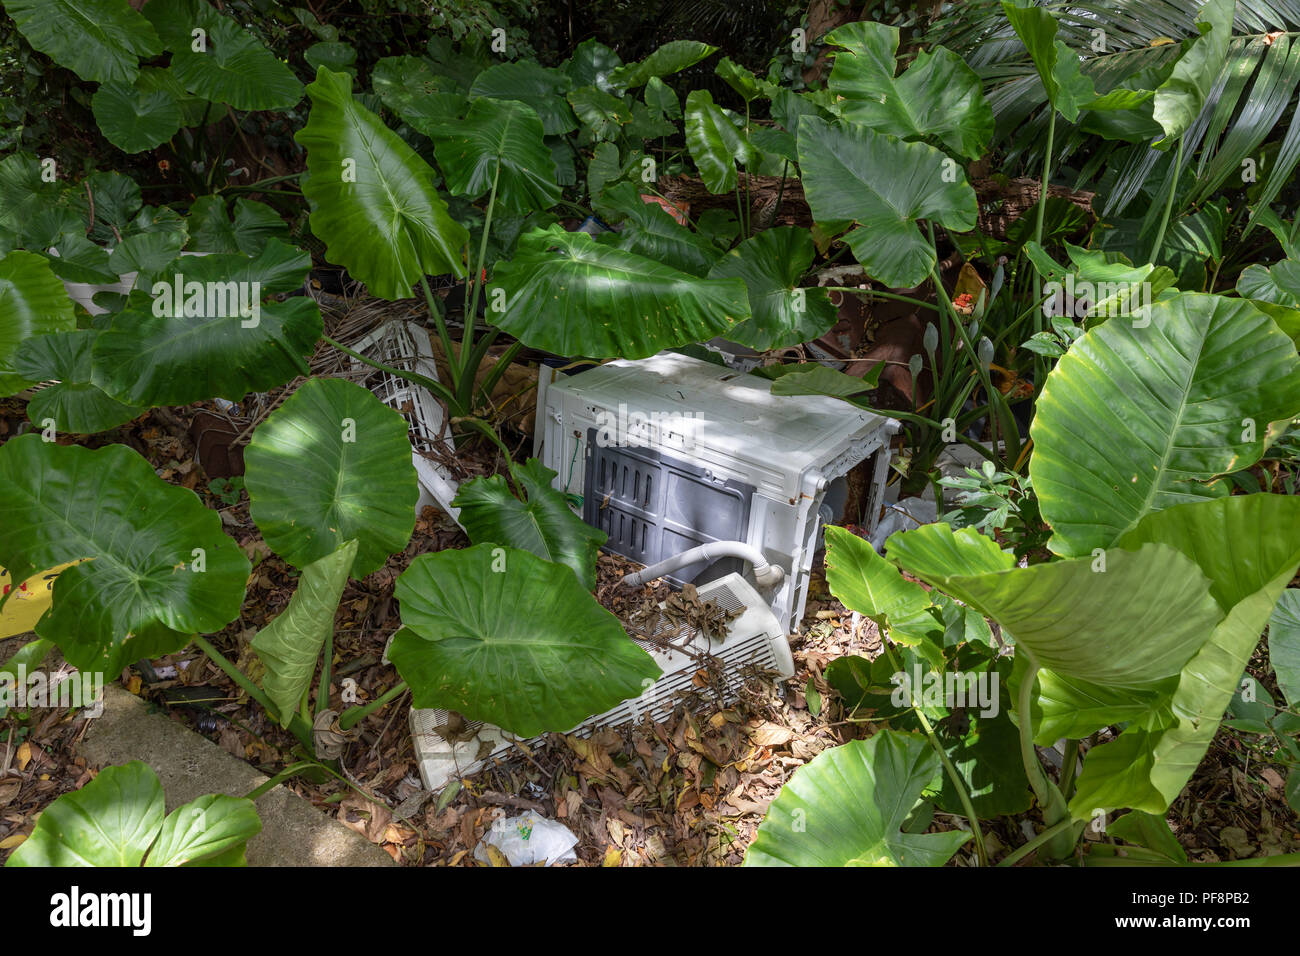 Electronic appliances, dumped in nature; Okinawa, Japan - Stock Image